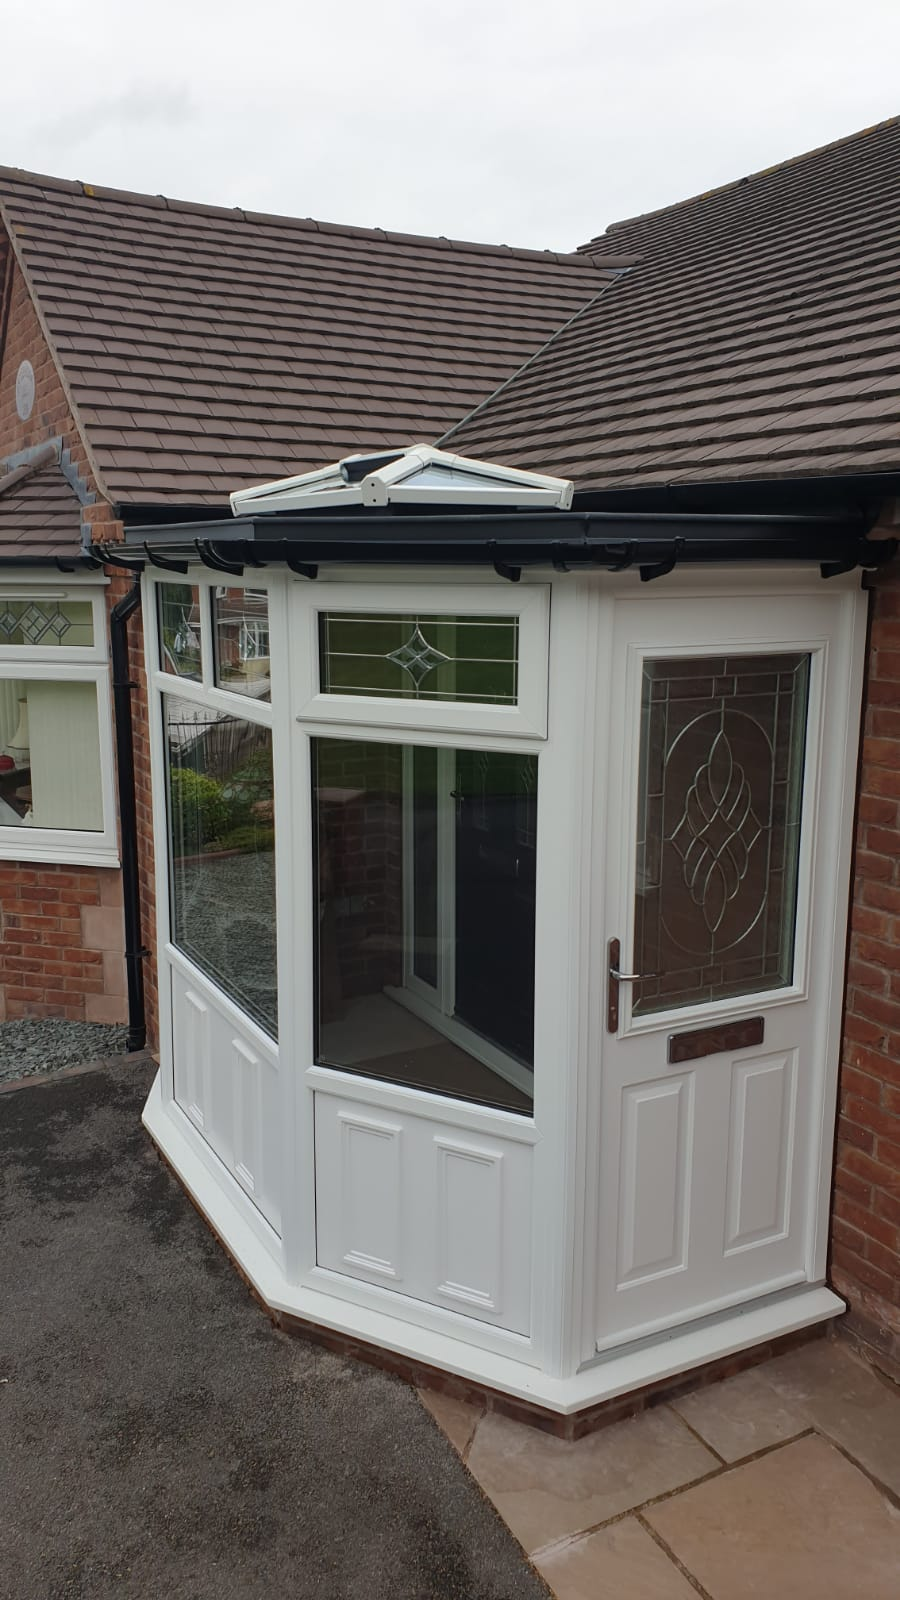 Photo of a door with a porch showing a lantern style roof